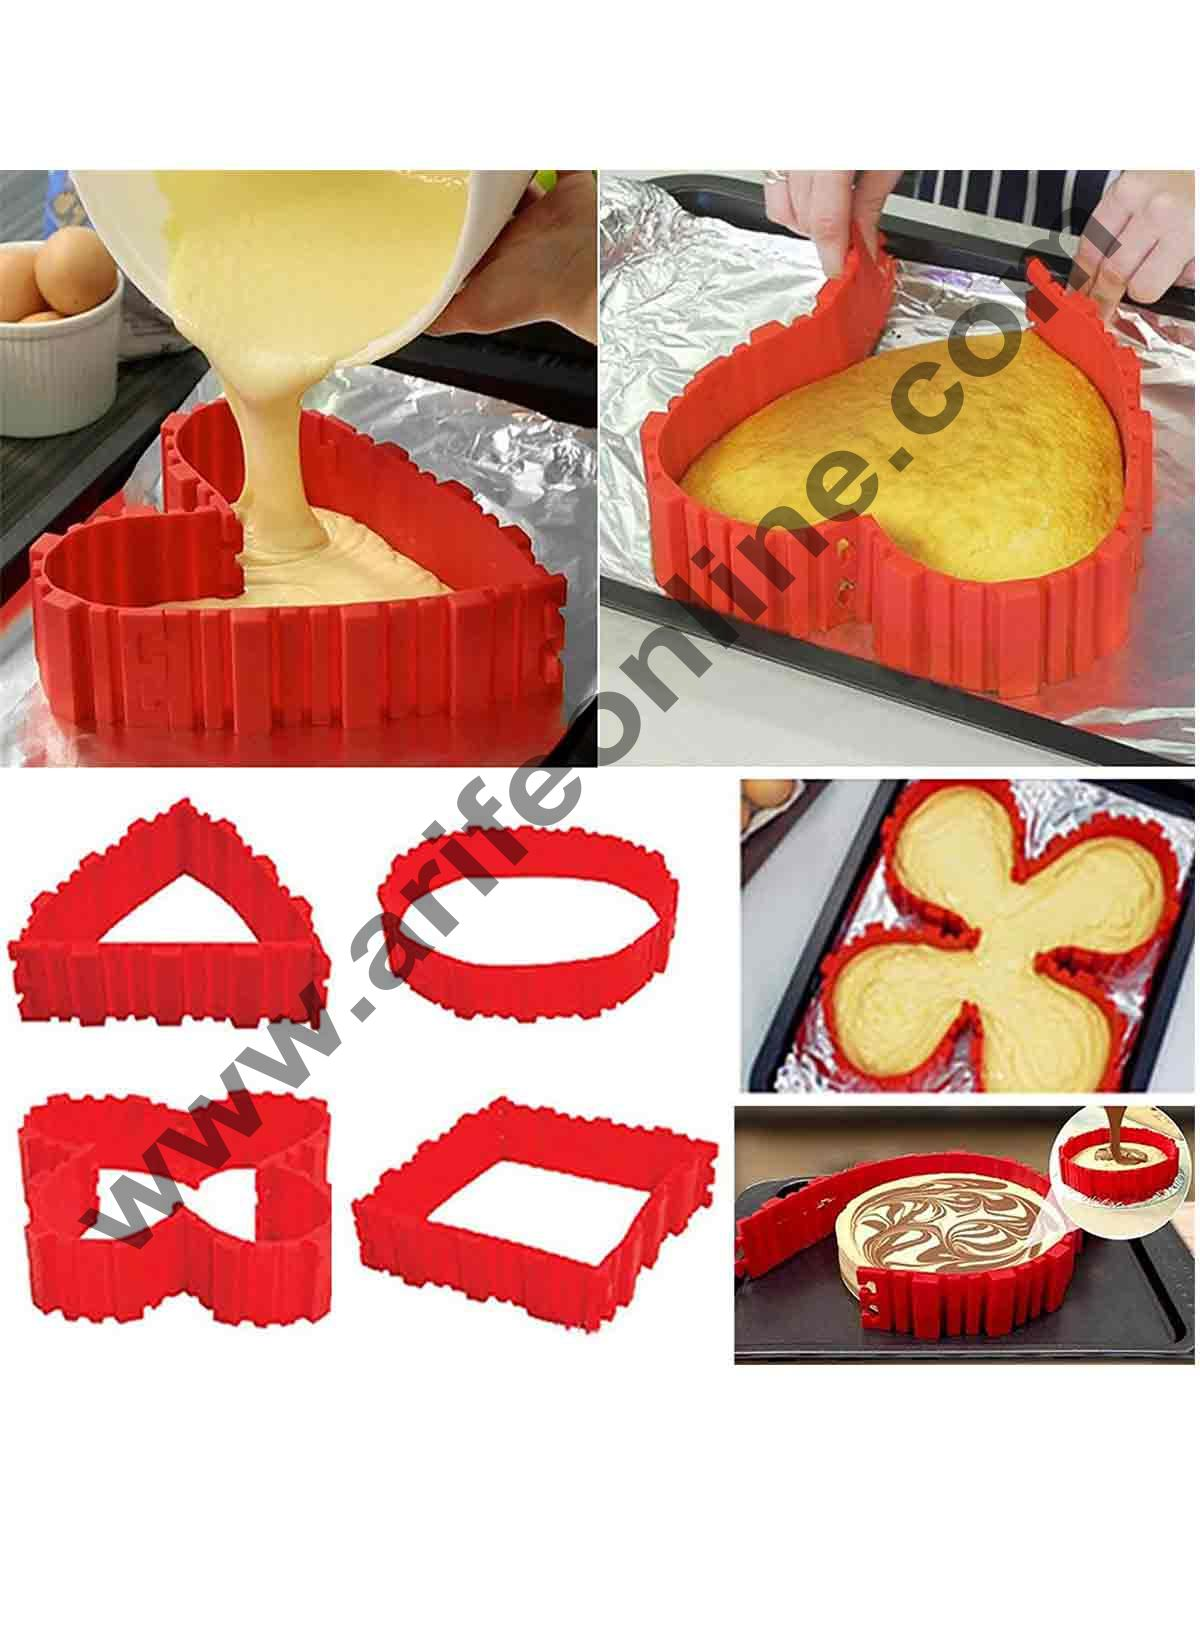 Cake Decor 4 Pcs Magic Bake Snake Silicone Nonstick Baking Snake Molds Diy Cakes In Any Shape